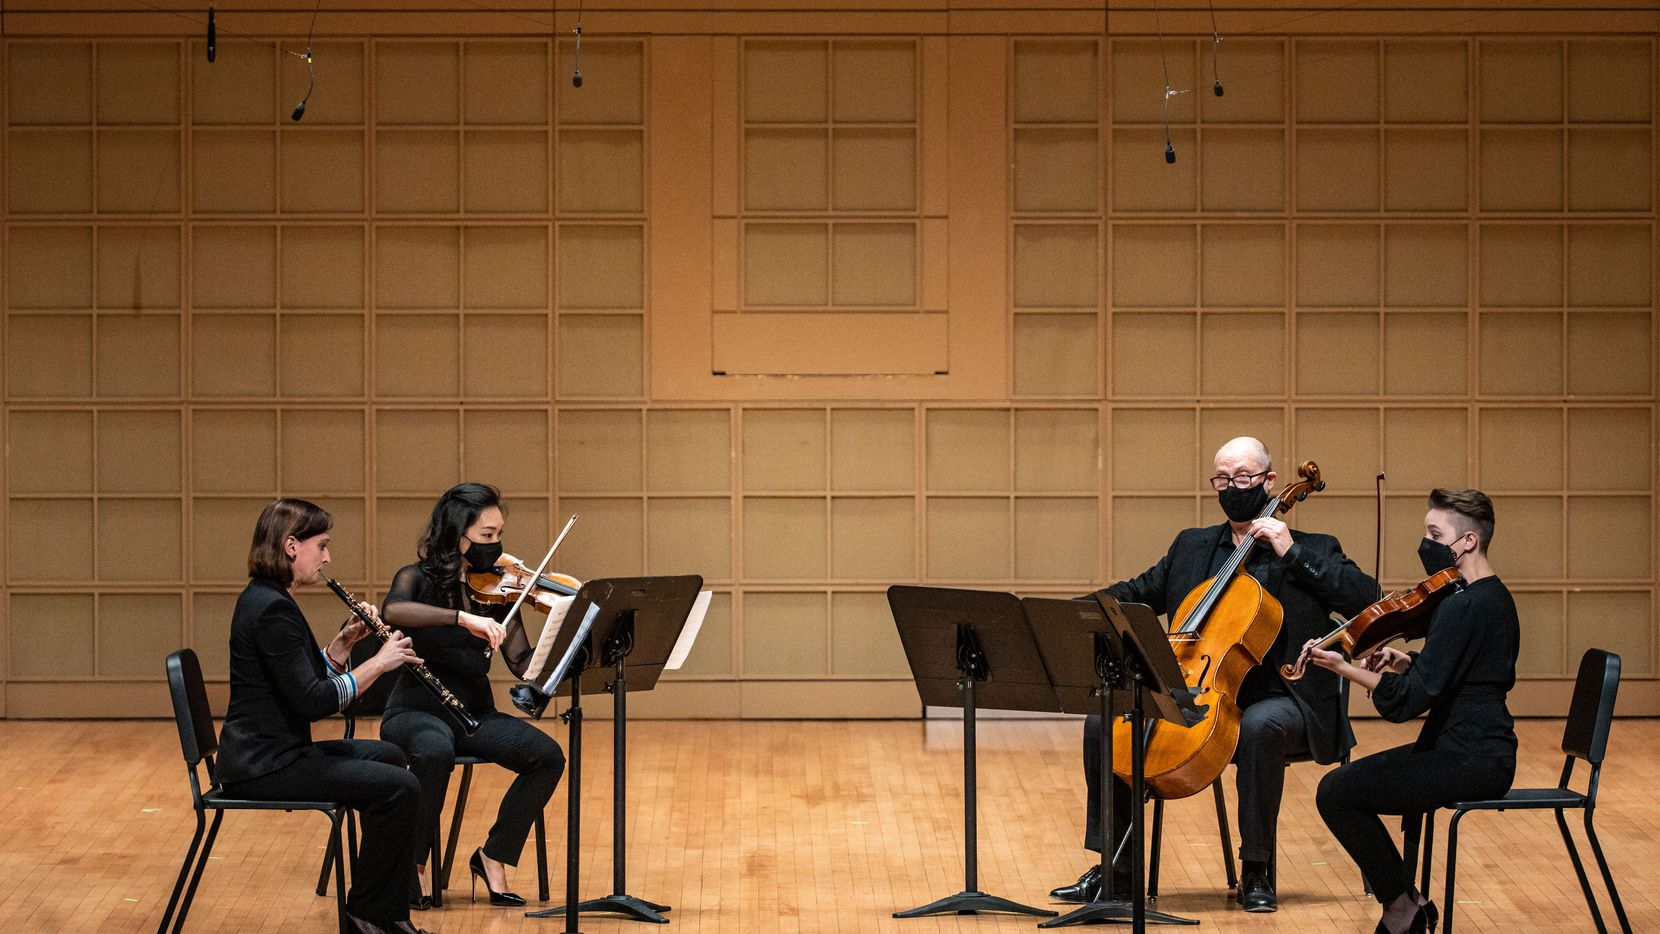 Oboist Erin Hannigan, violinist Eunice Keem, cellist Christopher Adkins and violist Meredith Kufchak premiere the 'Quartet for Oboe and Strings' by American composer Jeremy Gill as part of the Dallas Chamber Music Society concert at the Morton H. Meyerson Symphony Center in Dallas on Nov. 16.